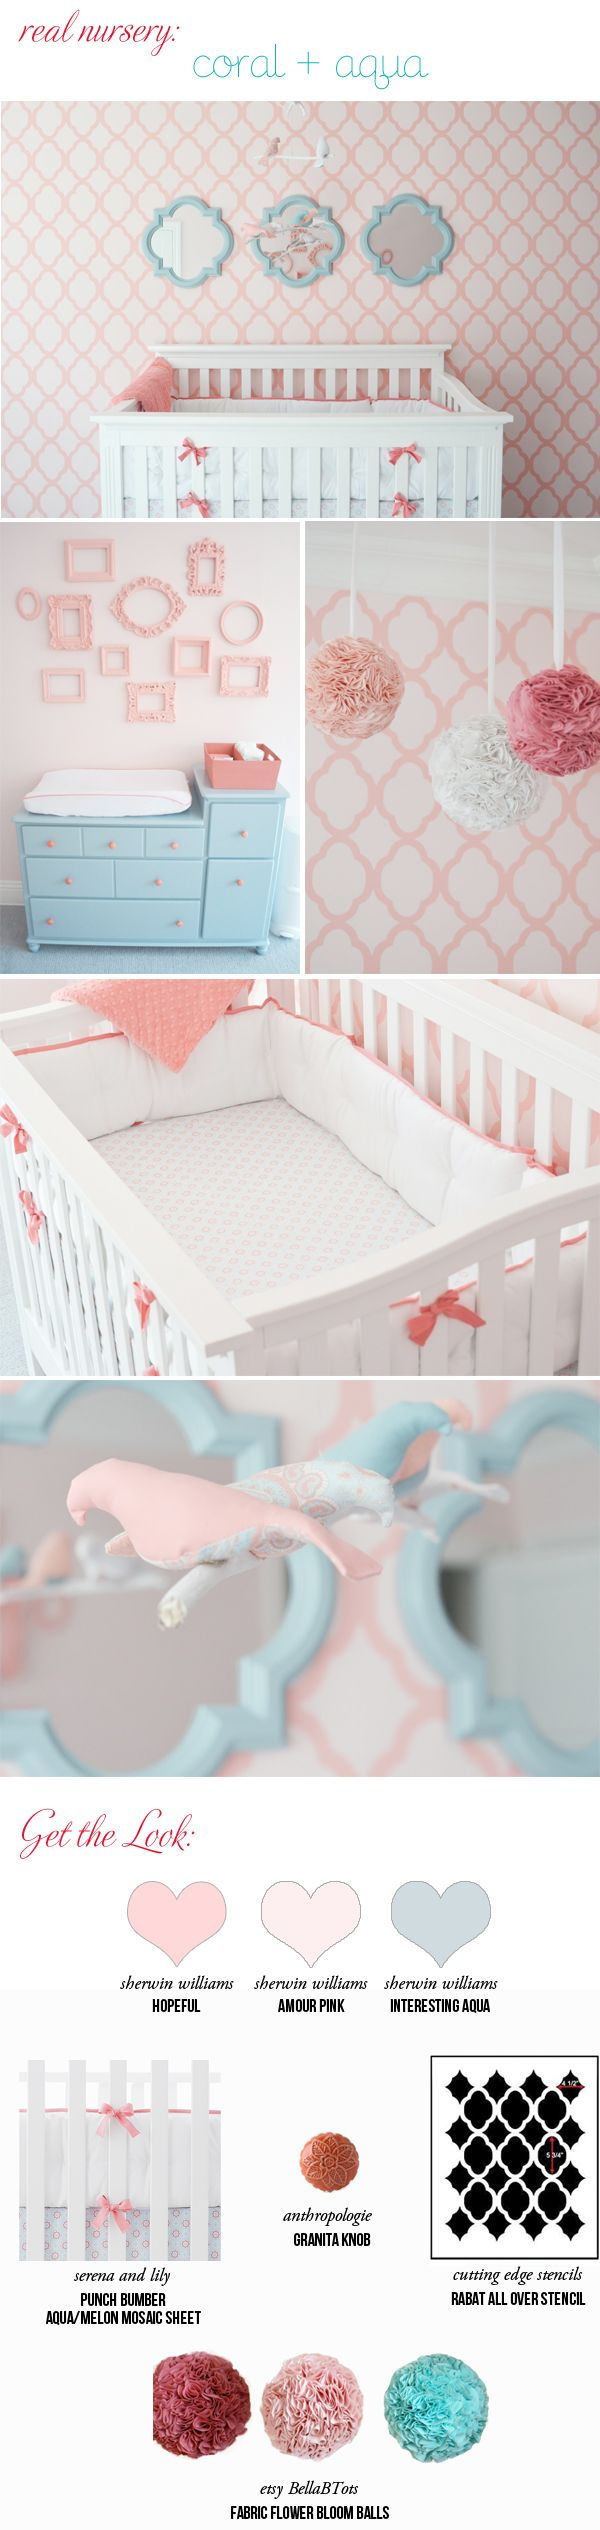 Coral and Aqua Real Nursery ~deeper tones but I like how the colors are mixed and shades are used